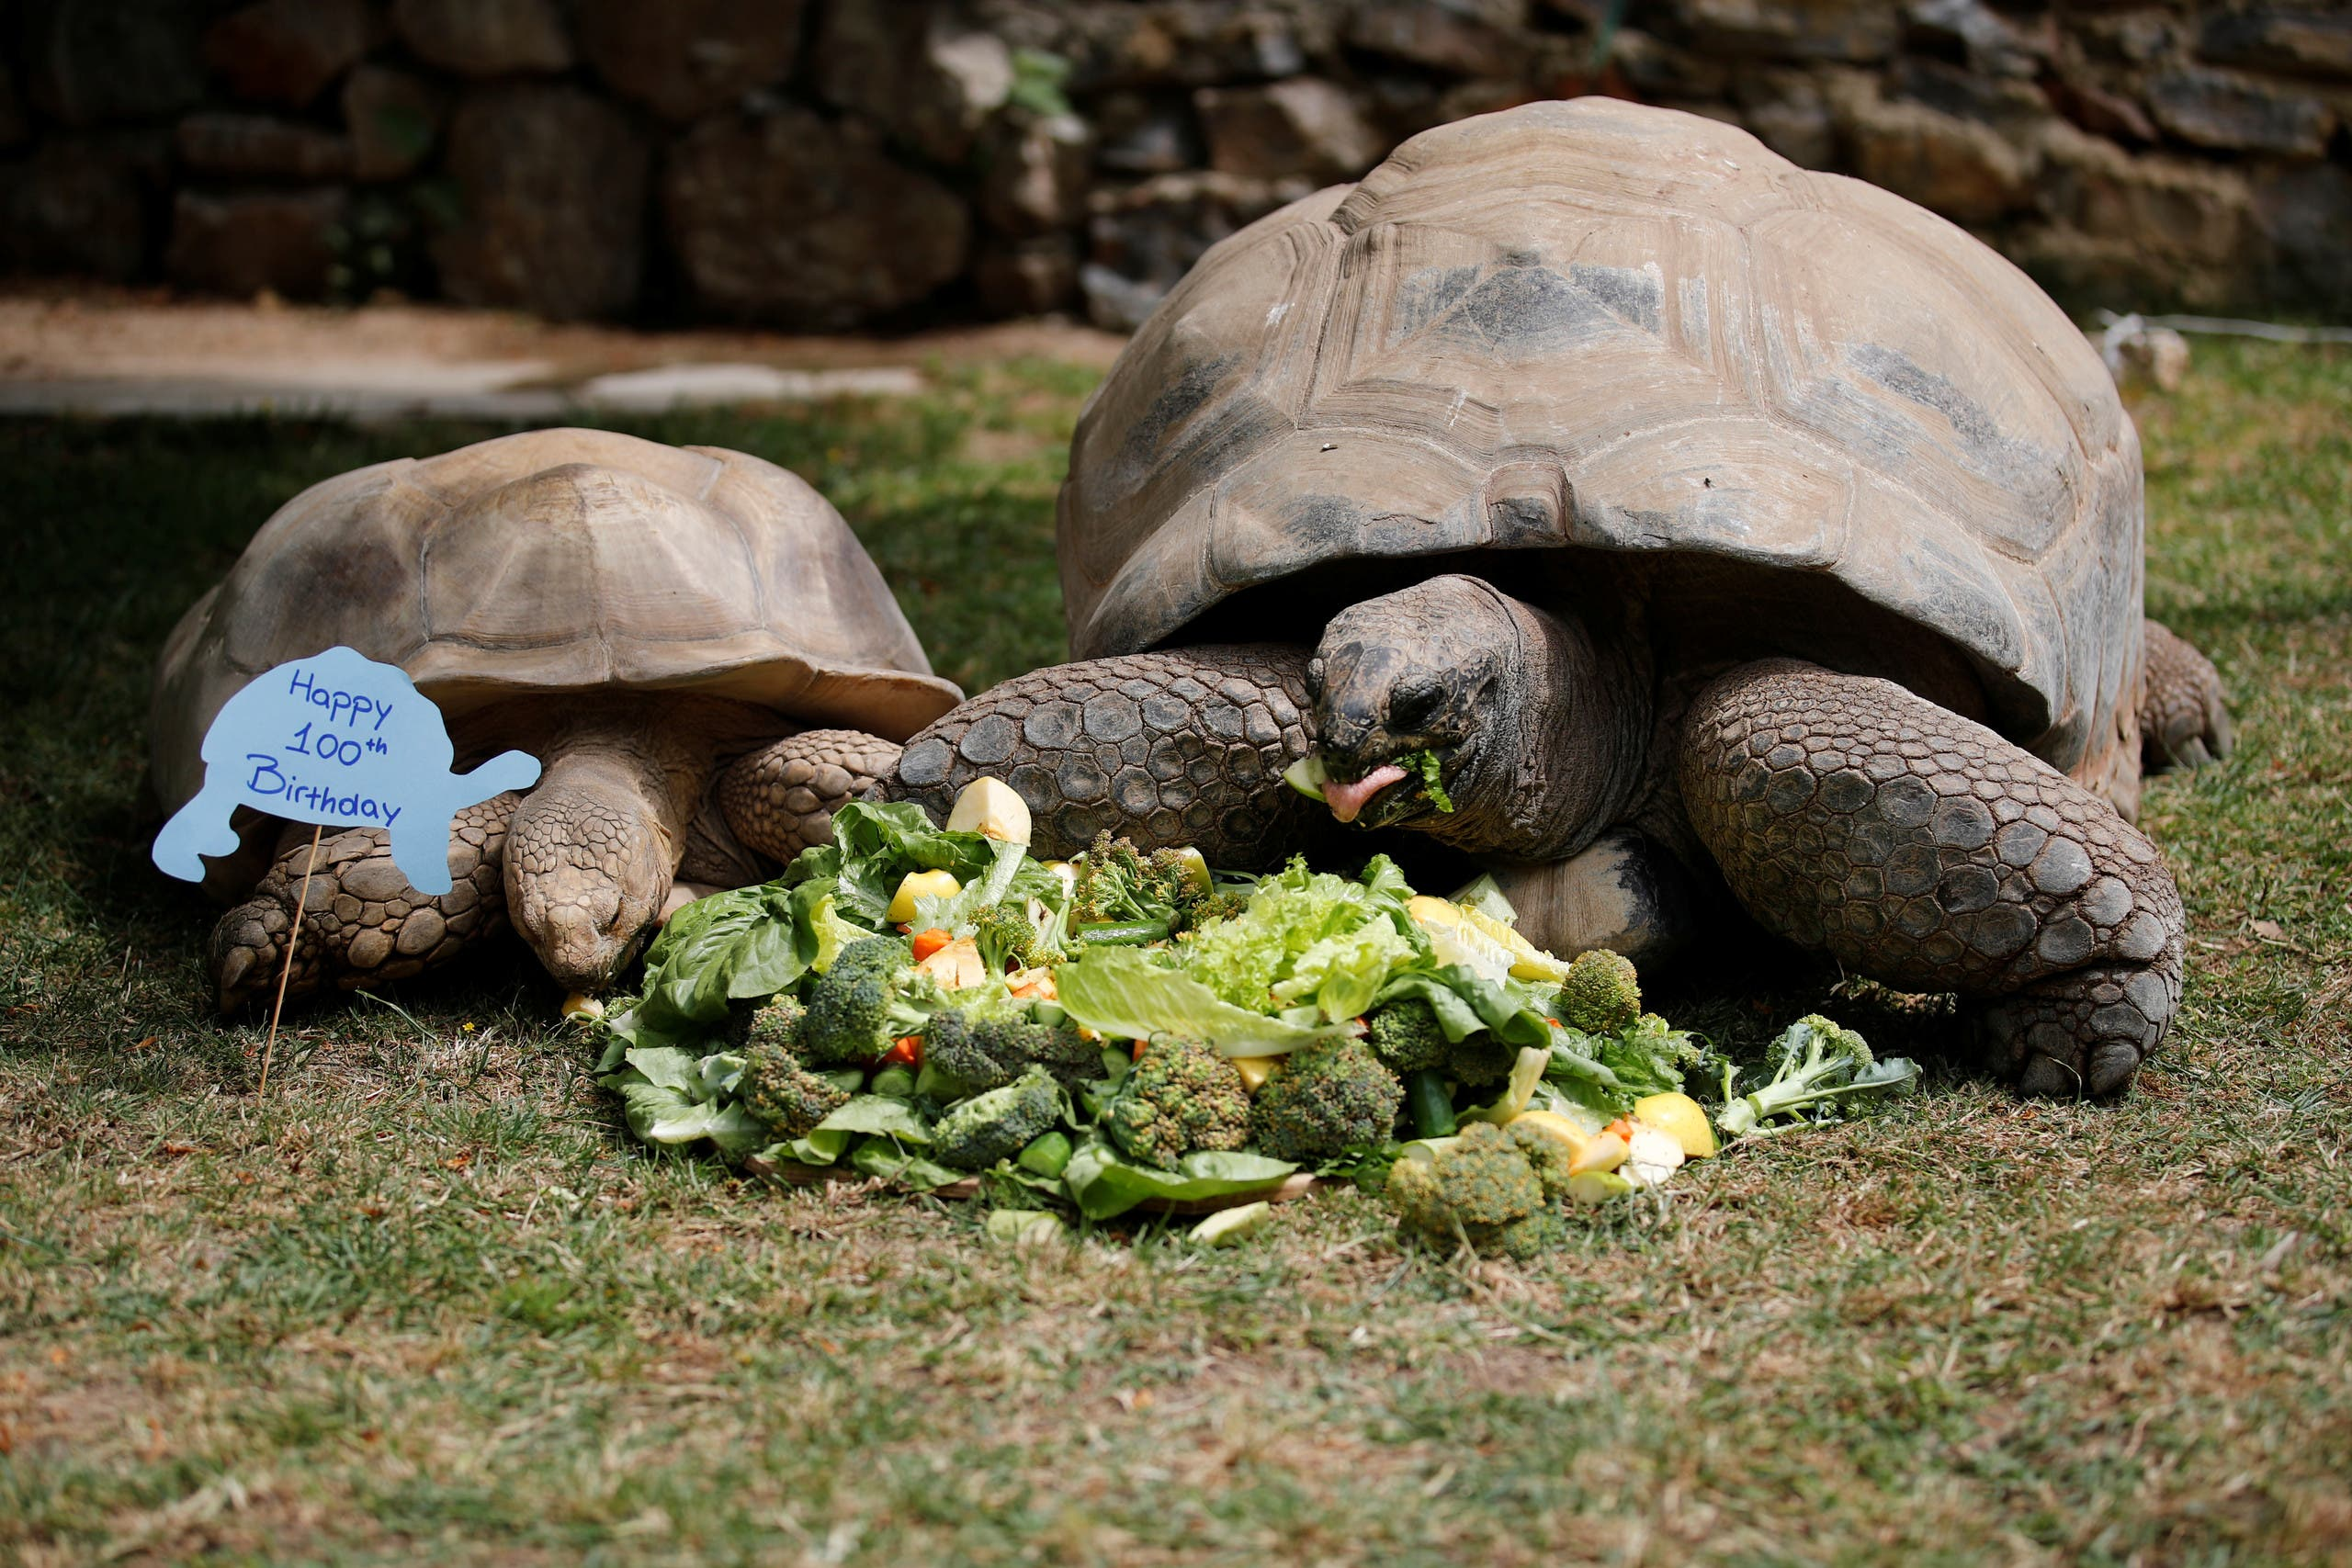 Tuki, an Aldabra Giant tortoise, and an African spurred tortoise eat a cake made of vegetables to celebrate Tuki's 100th birthday at Faruk Yalcin Zoo, amid the spread of the coronavirus disease (COVID-19) in Darica, 60 kilometers east of Istanbul, Turkey, April 30, 2020. (Reuters)